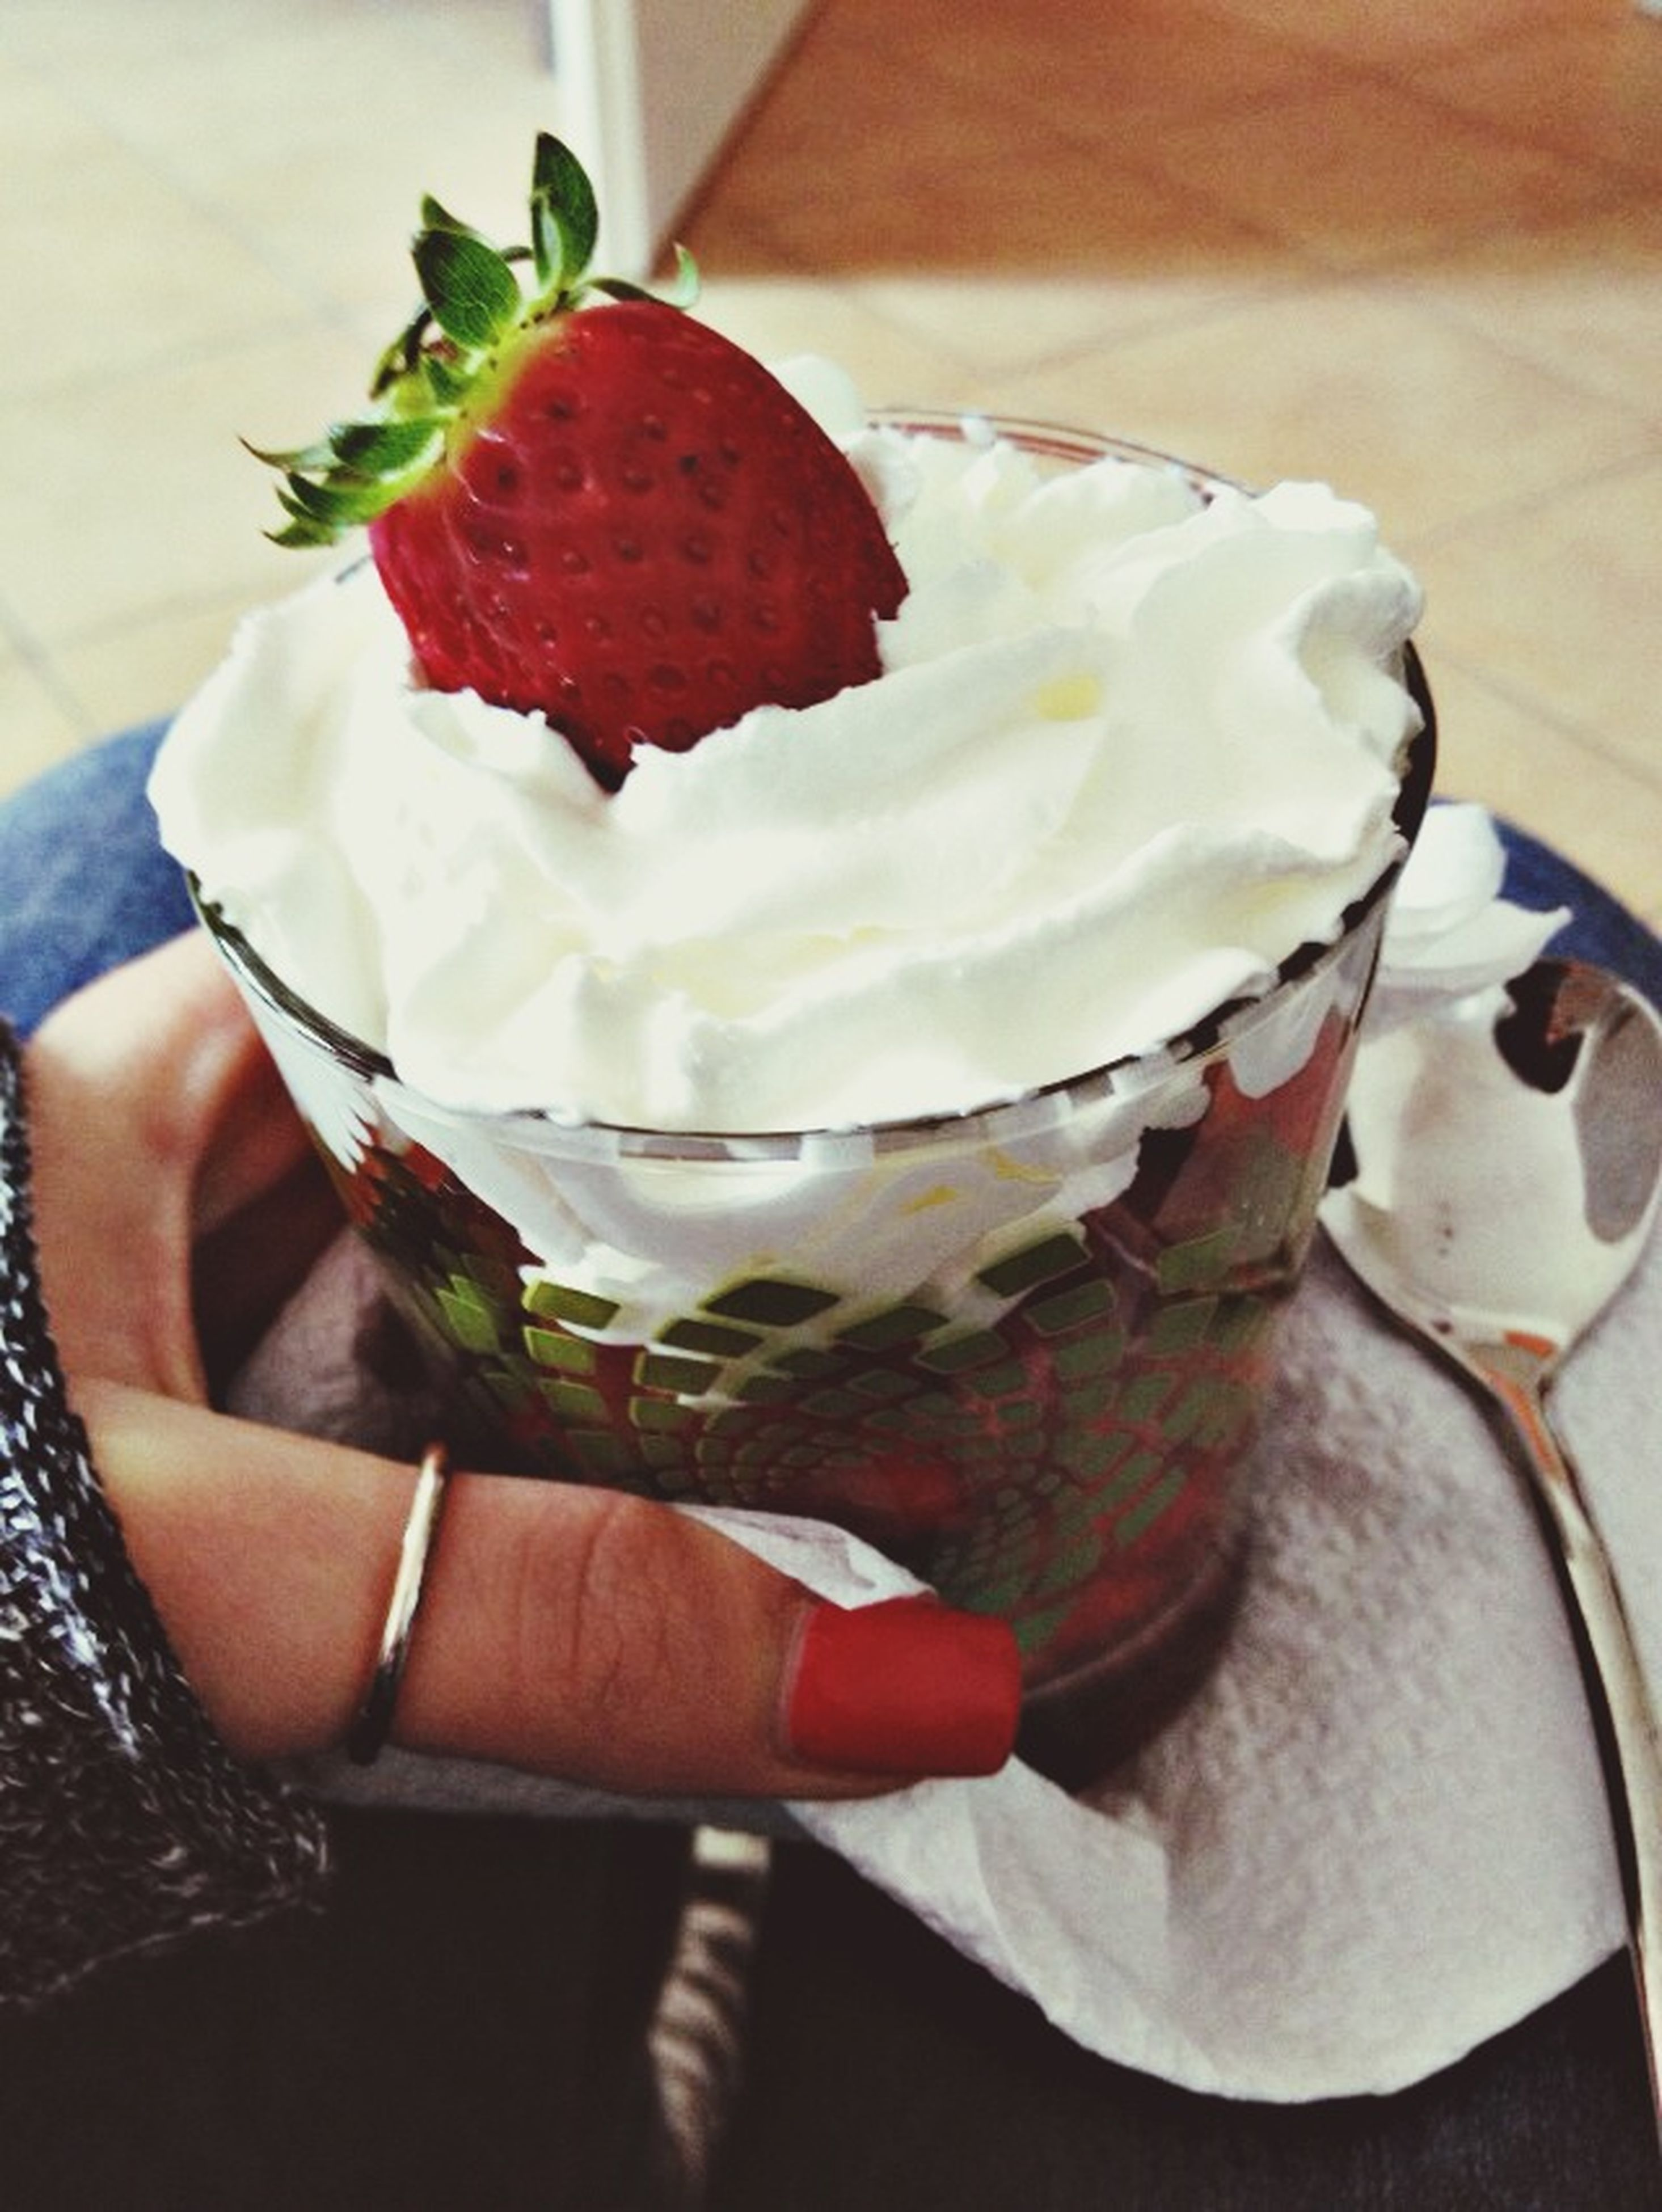 food and drink, sweet food, holding, freshness, person, dessert, indoors, indulgence, frozen food, ice cream, food, unhealthy eating, red, lifestyles, close-up, strawberry, temptation